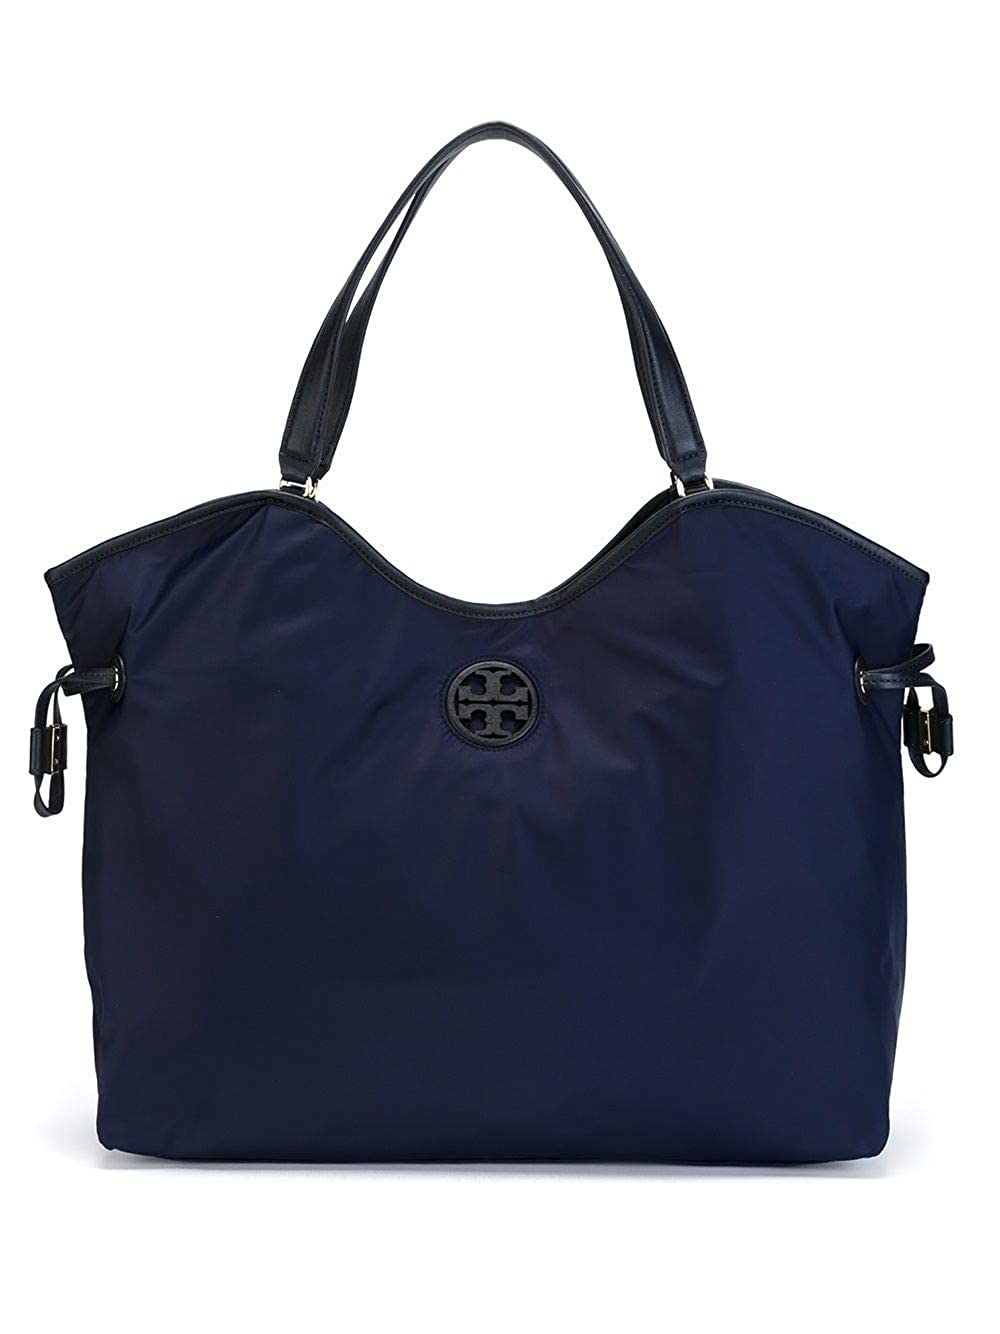 6048f4e0e07 Tory Burch Nylon Slouchy Tote Shoulder Bag